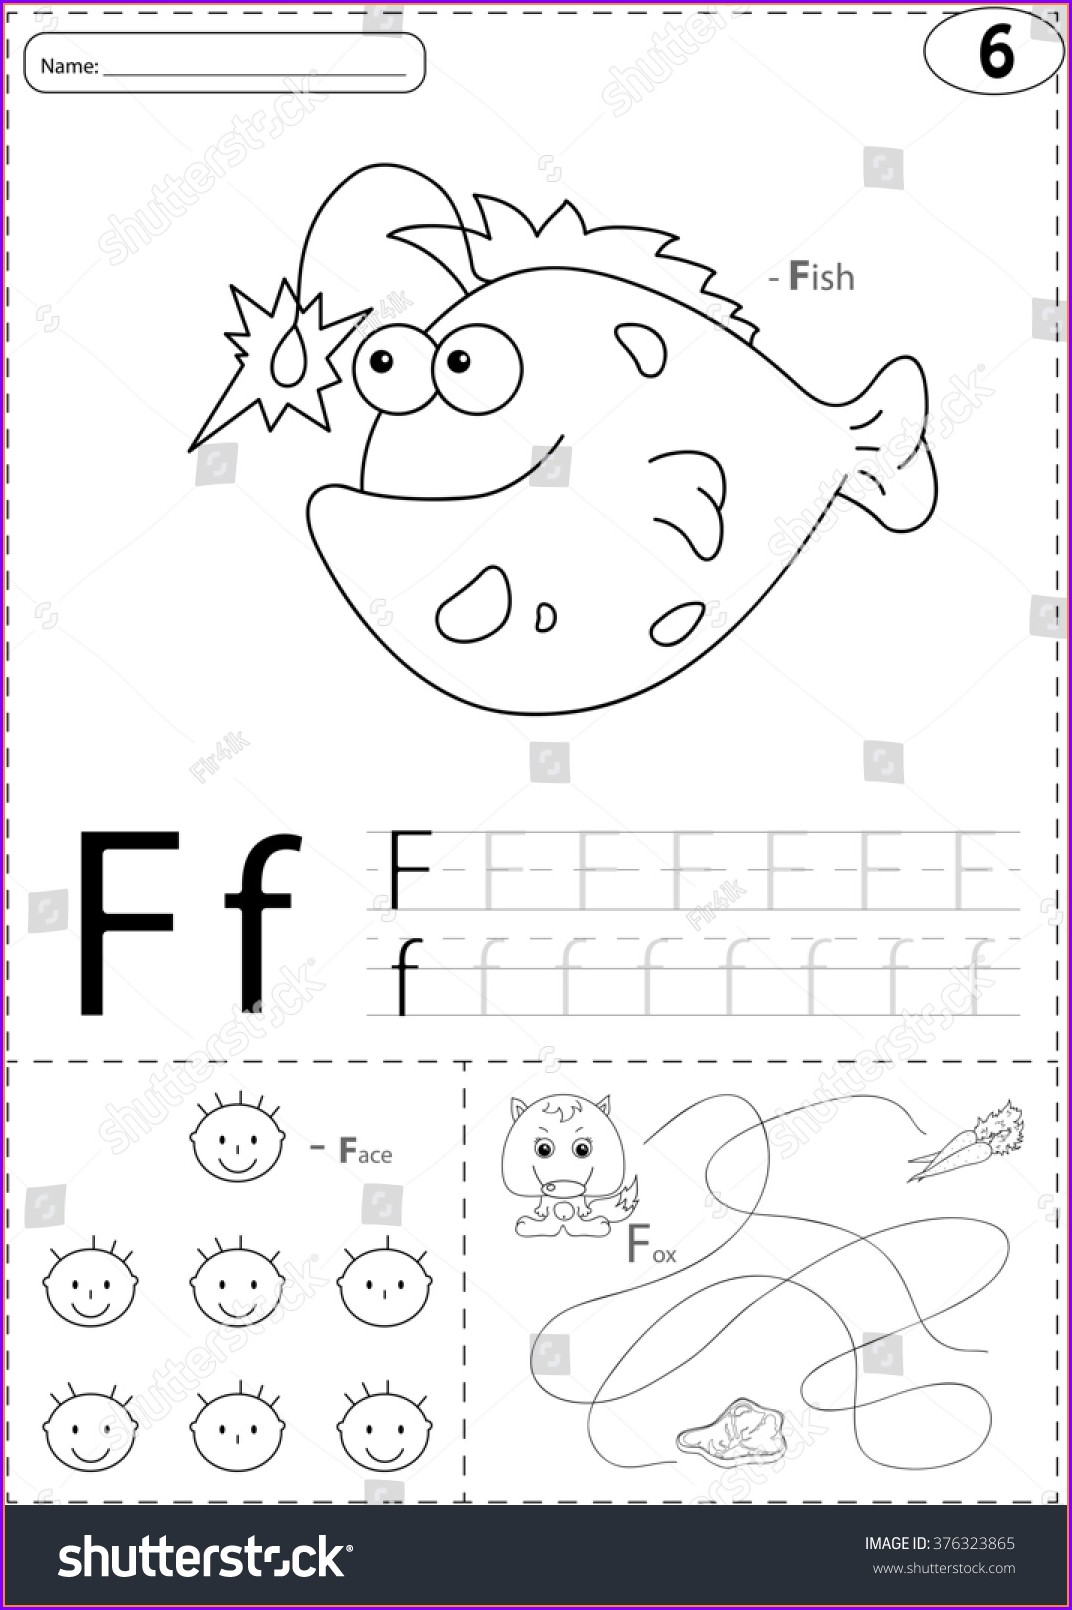 Free Cursive Writing Worksheets A Z